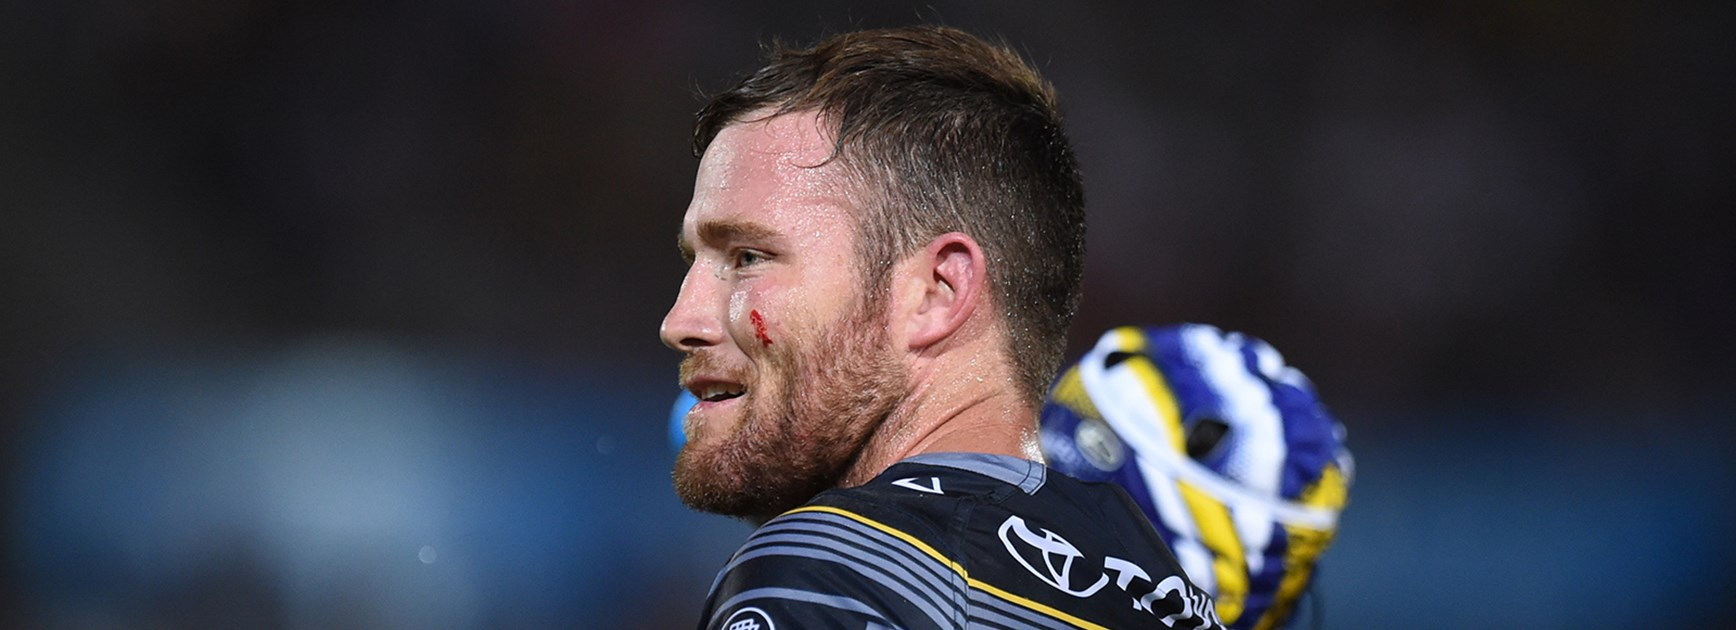 North Queensland Cowboys second-row forward Gavin Cooper.